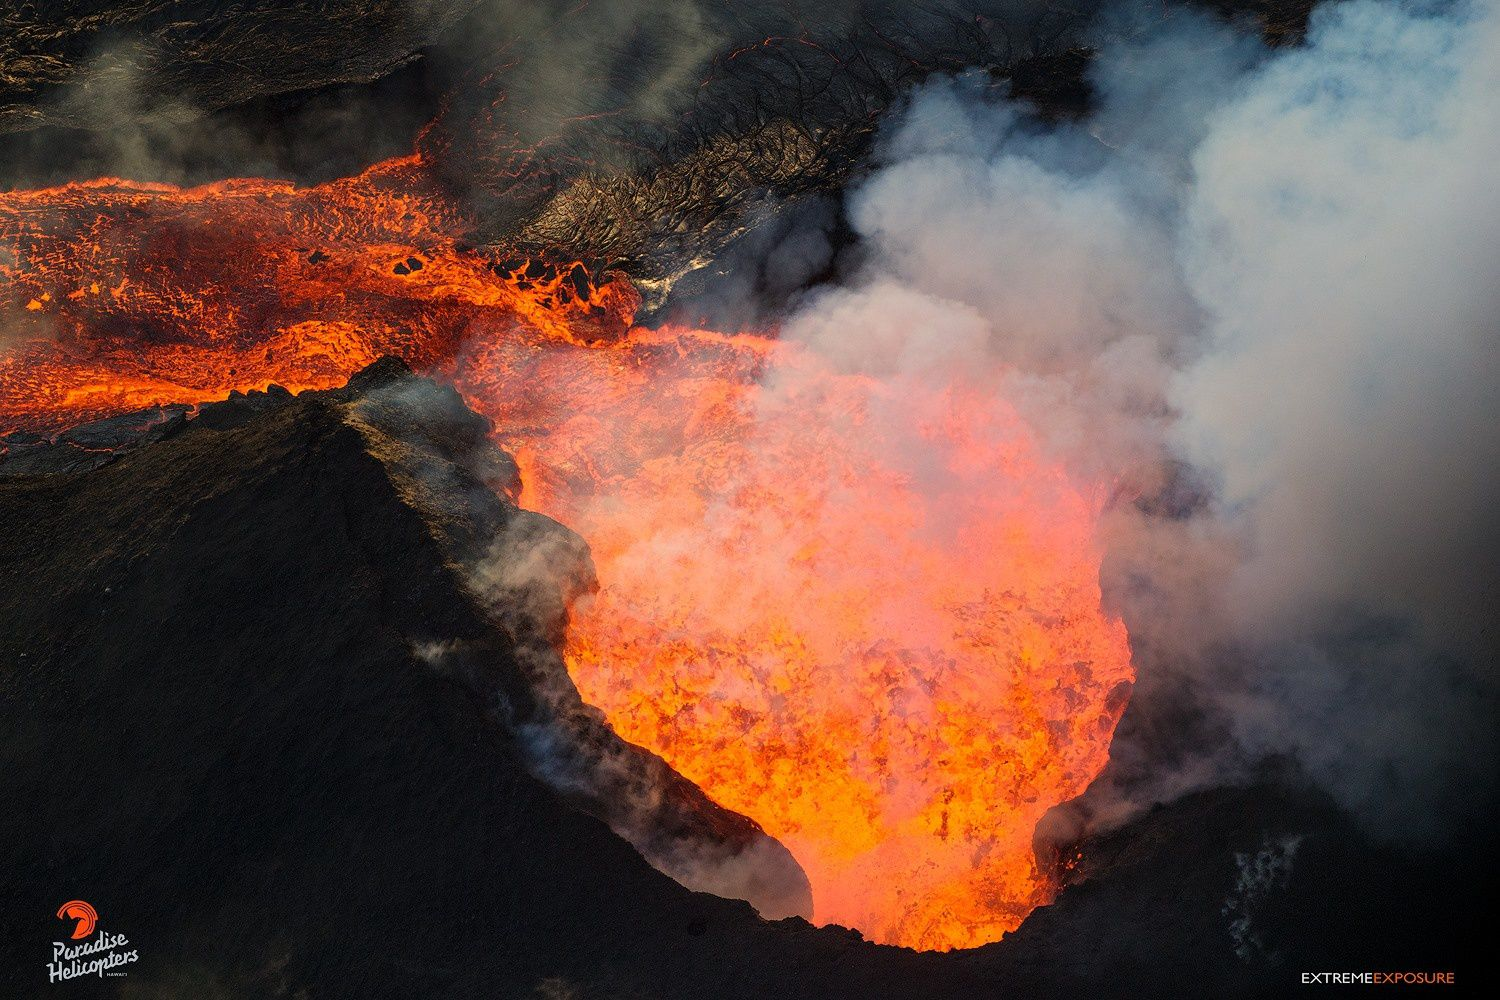 Kilauea East rift zone - lava comes out in large quantities from the spatter cone established on the fissure8 - photo Bruce Omori 11.07.2018